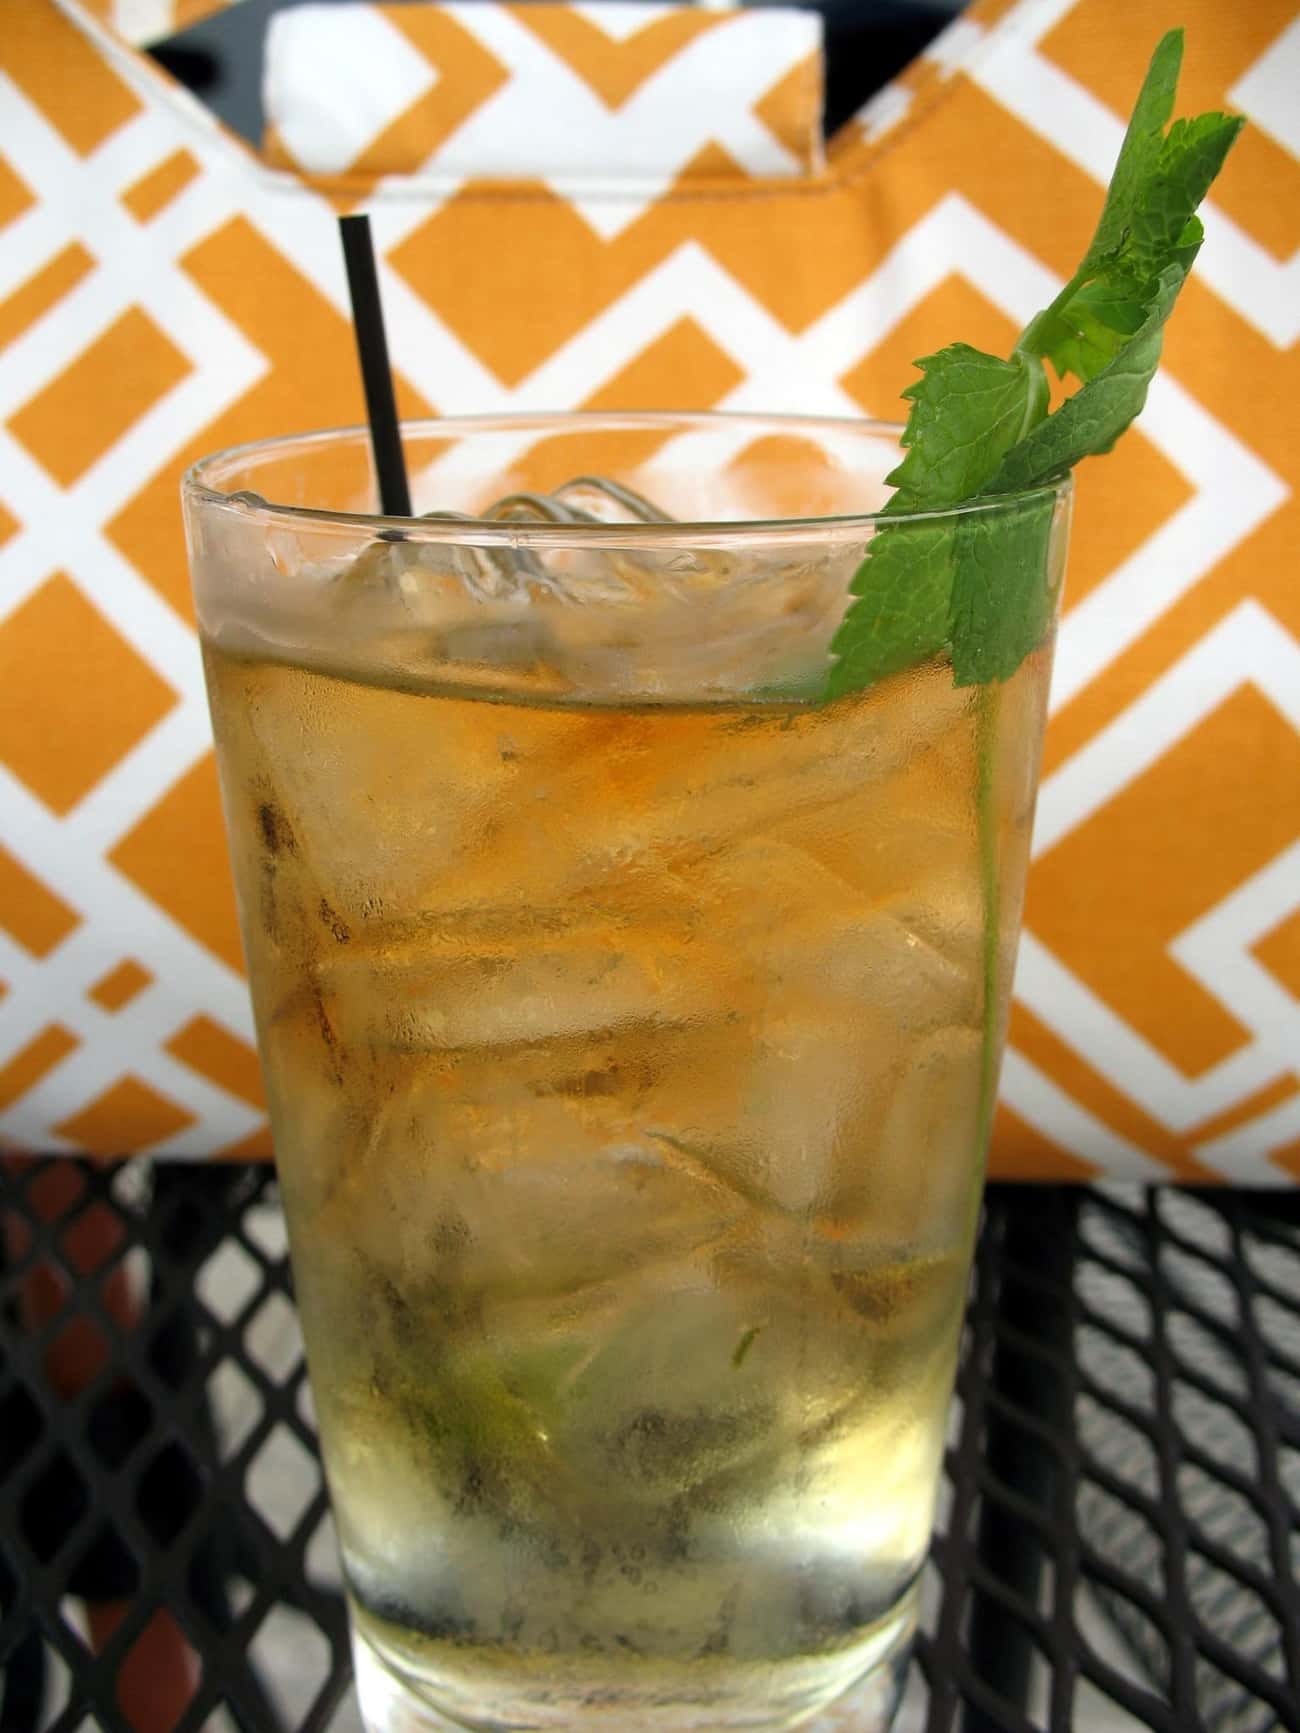 Mint julep is listed (or ranked) 1 on the list The Best Whiskey Cocktails for Summer